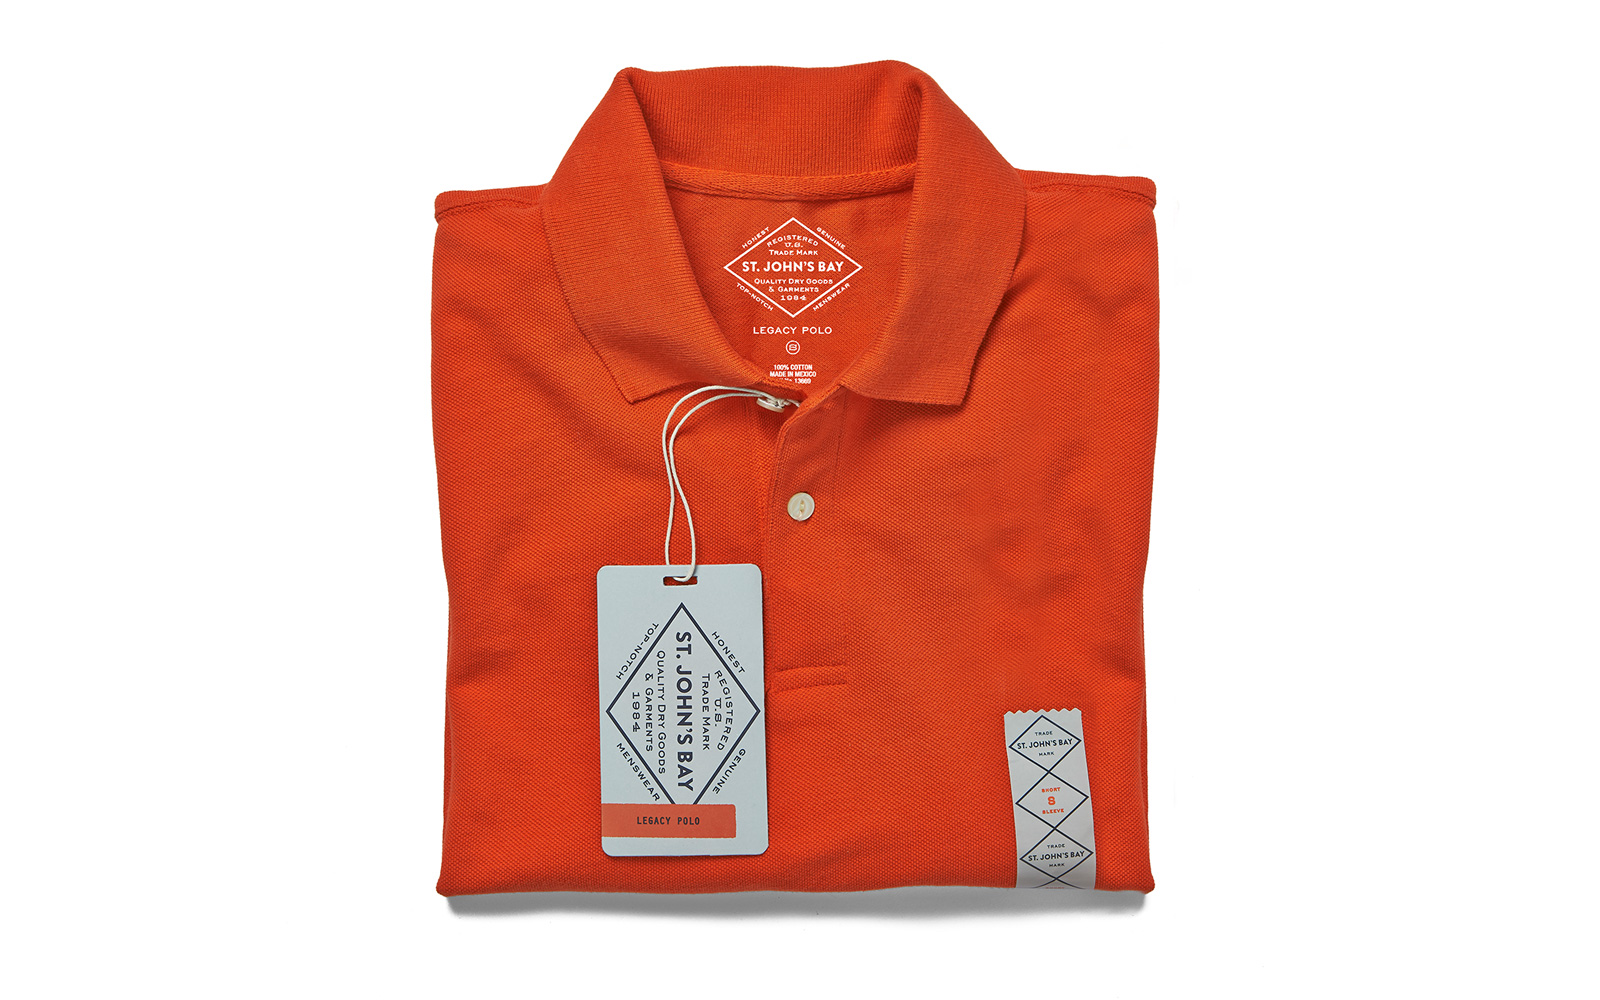 St John S Bay Polo Shirts - T Shirt Design Collections